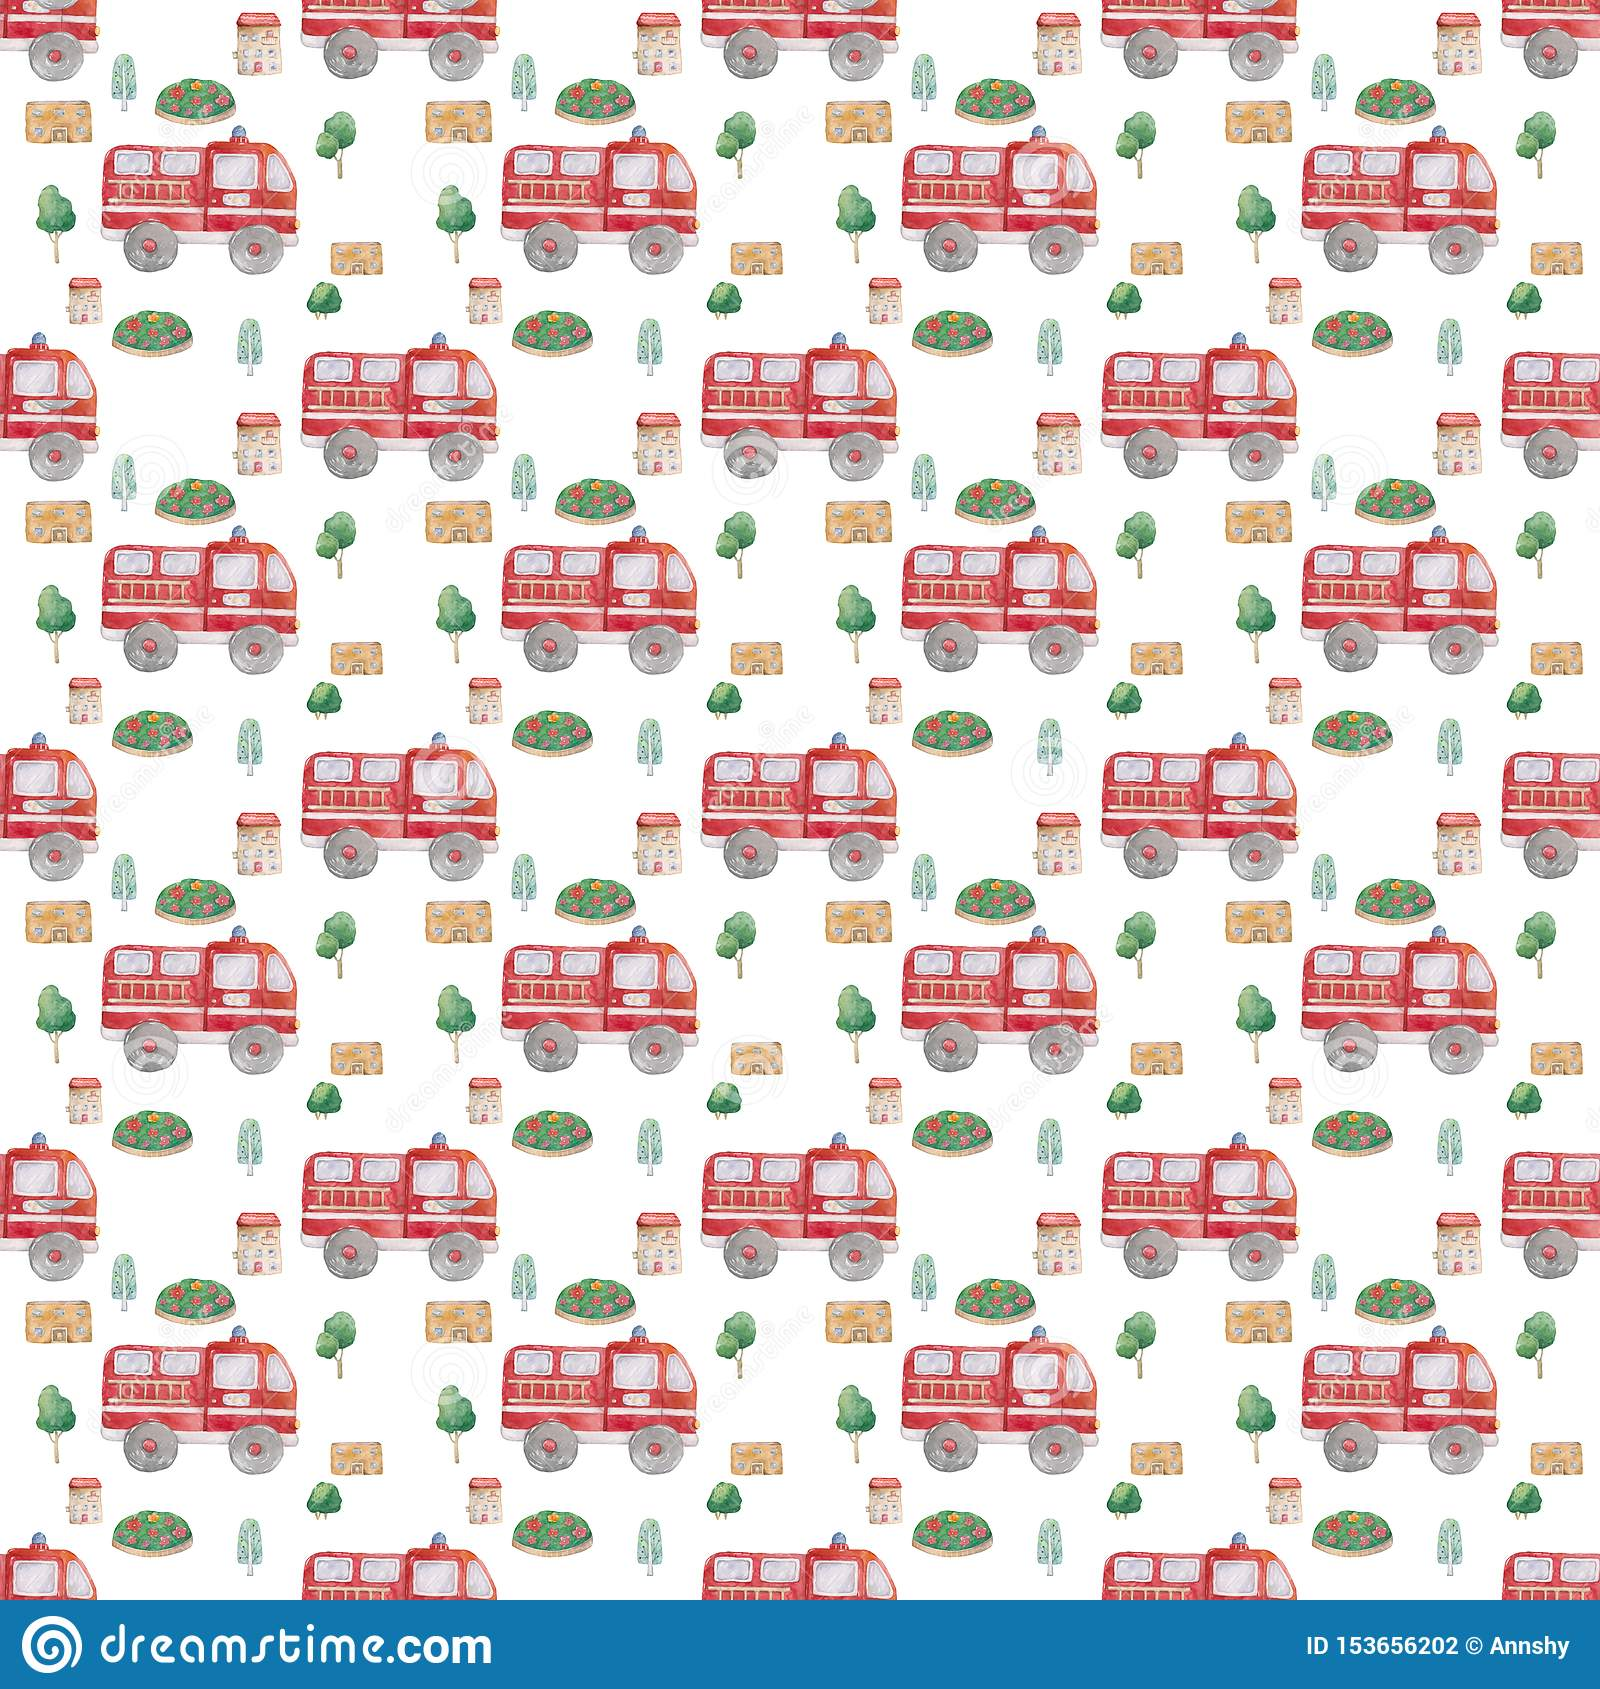 Watercolor Hand drawn fire trucks and green tree seamless pattern on white background. Cartoon illustration, baby cute truck style